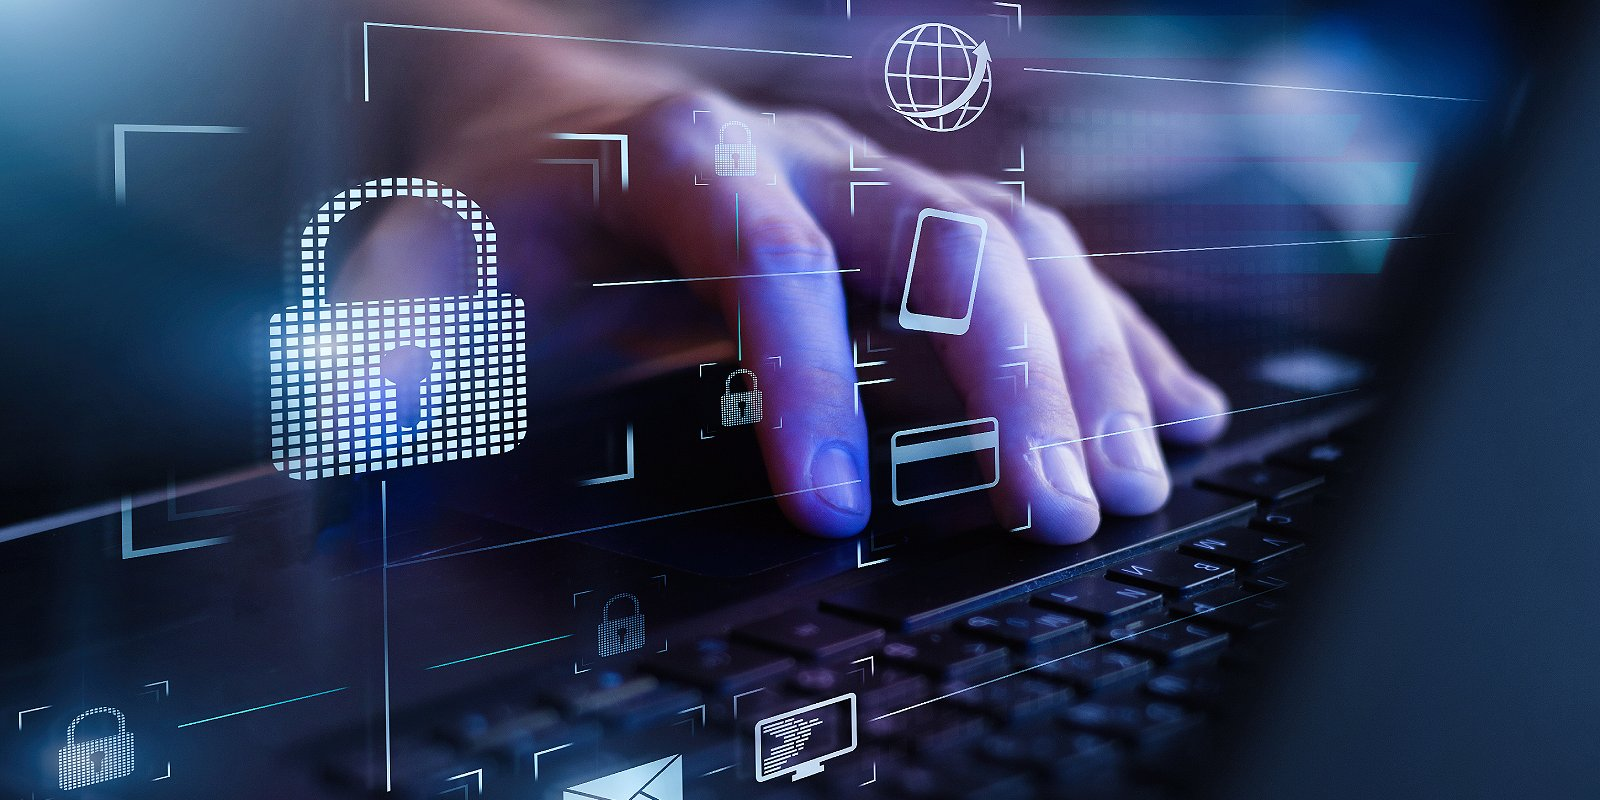 Cybersecurity and data encryption. Cybersecurity measures are must for banks